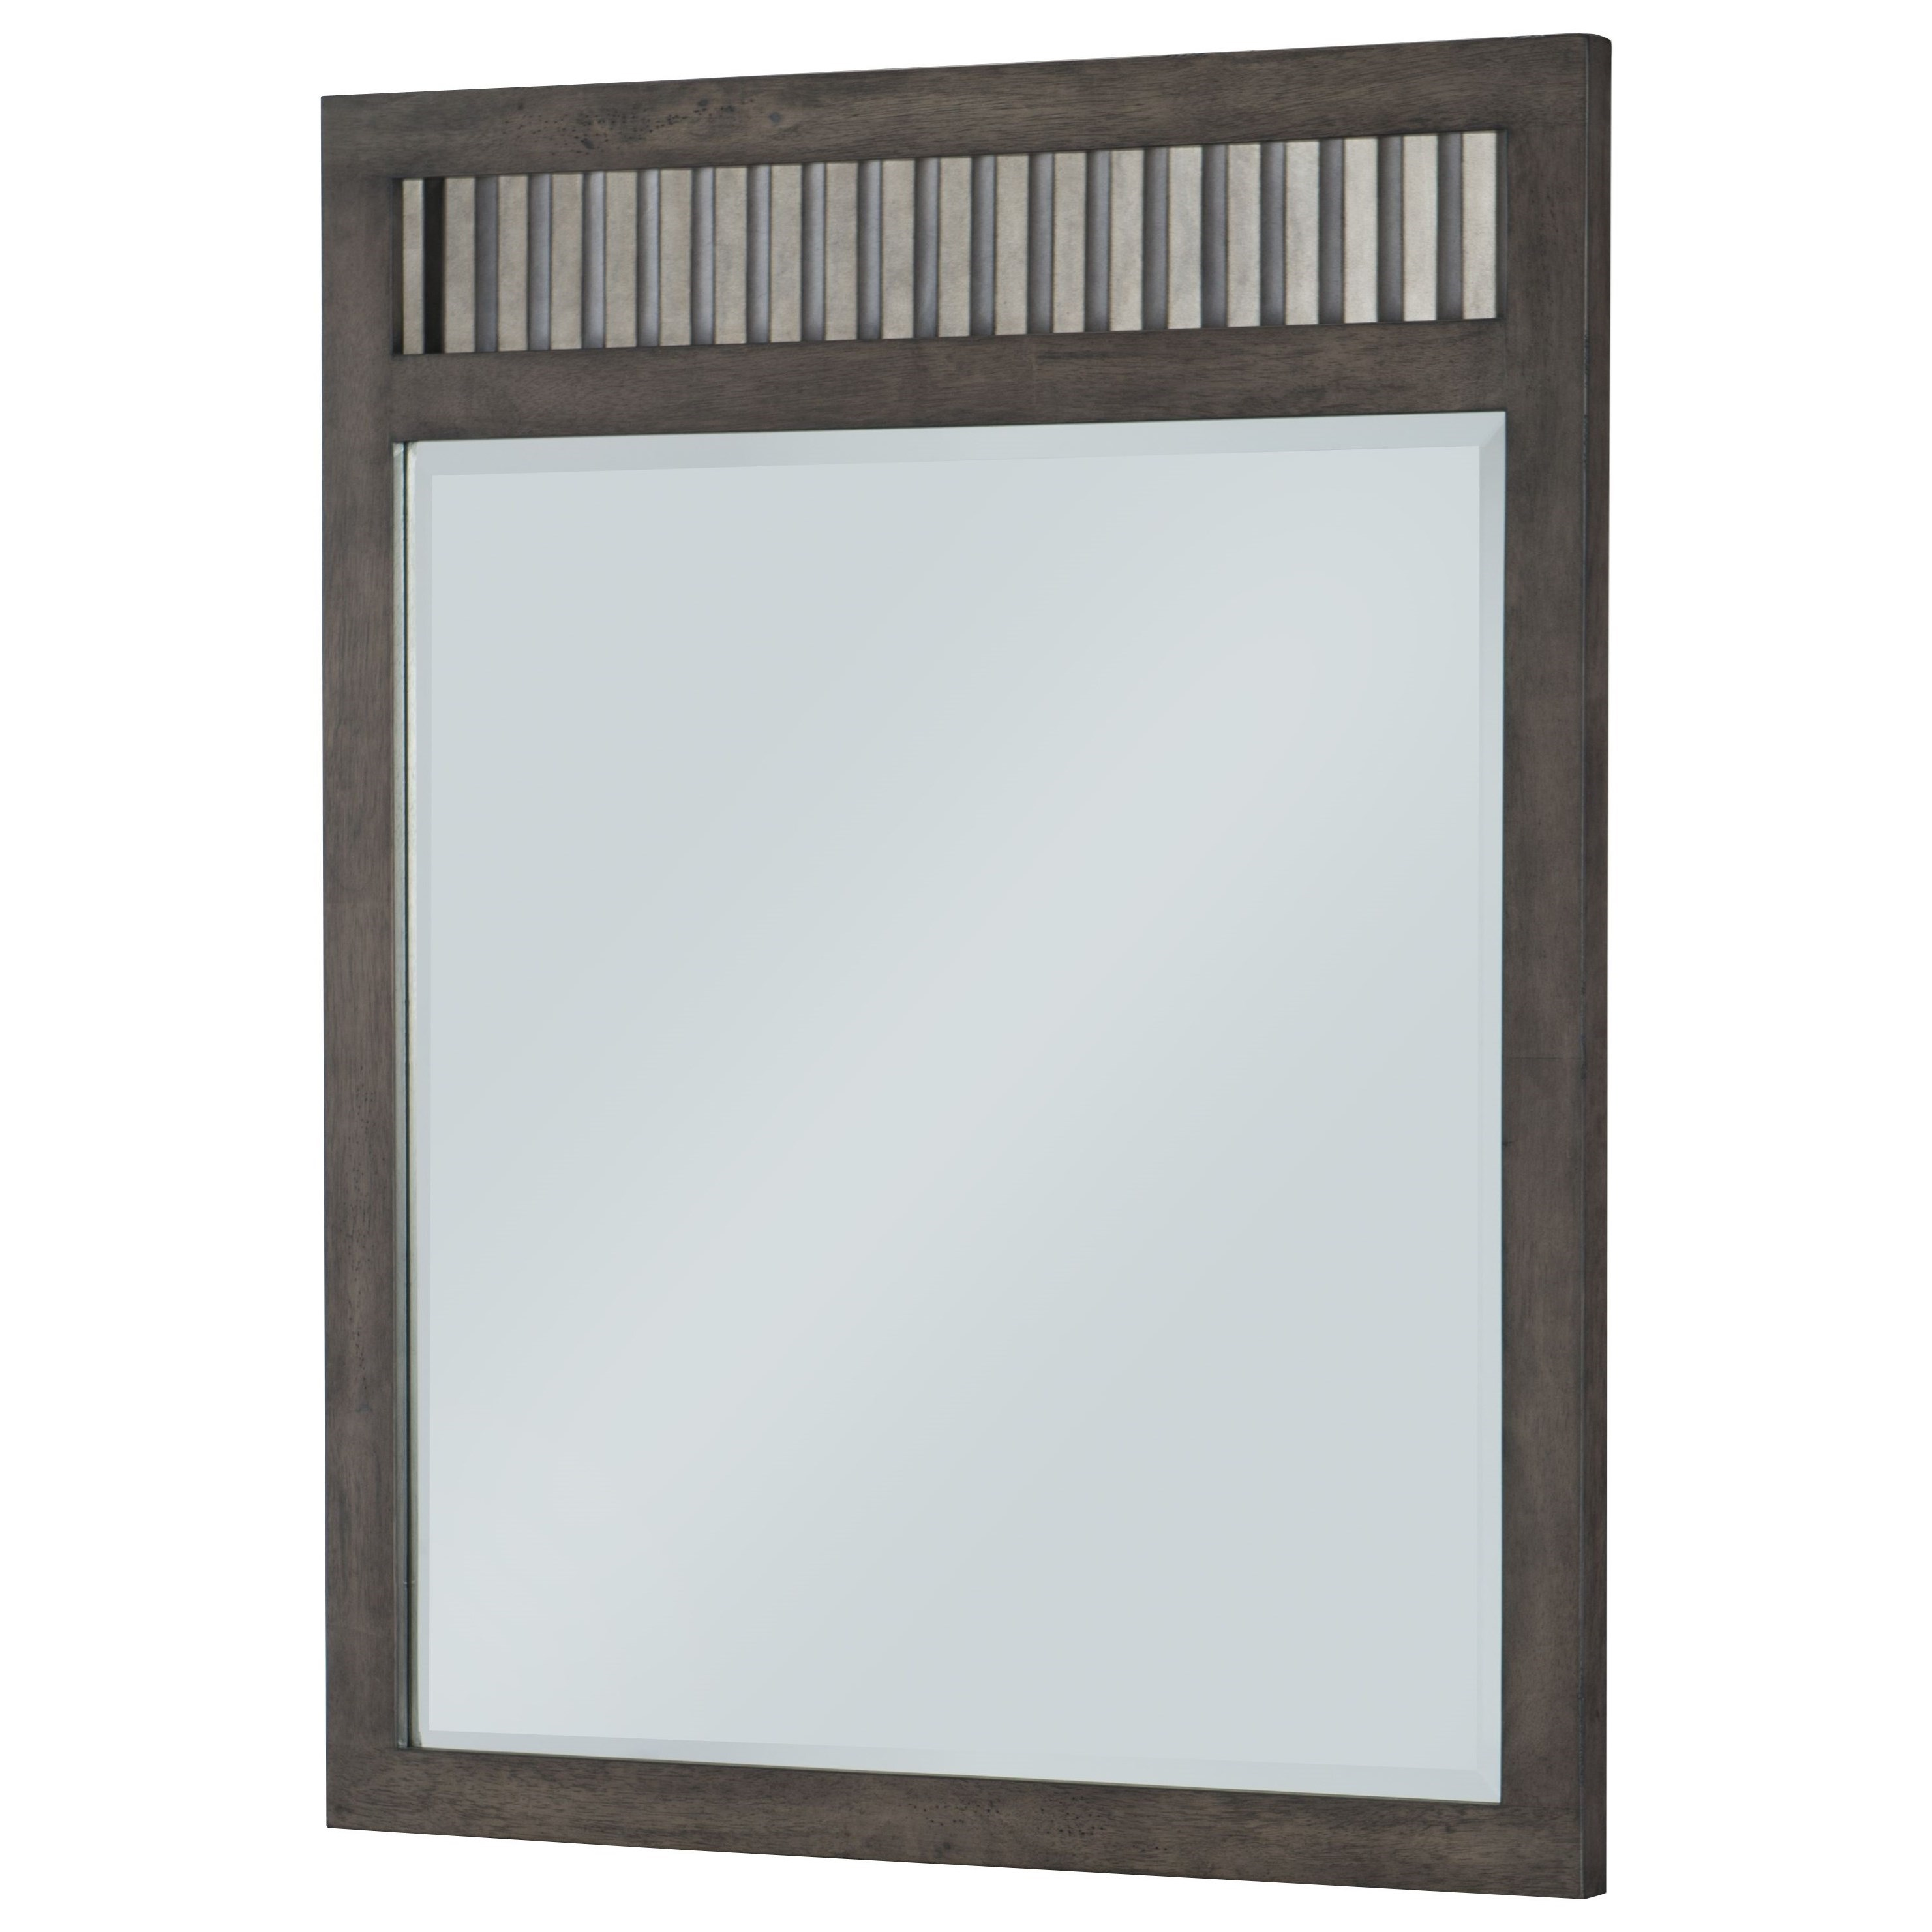 Bunkhouse Vertical Mirror  by Legacy Classic Kids at Darvin Furniture